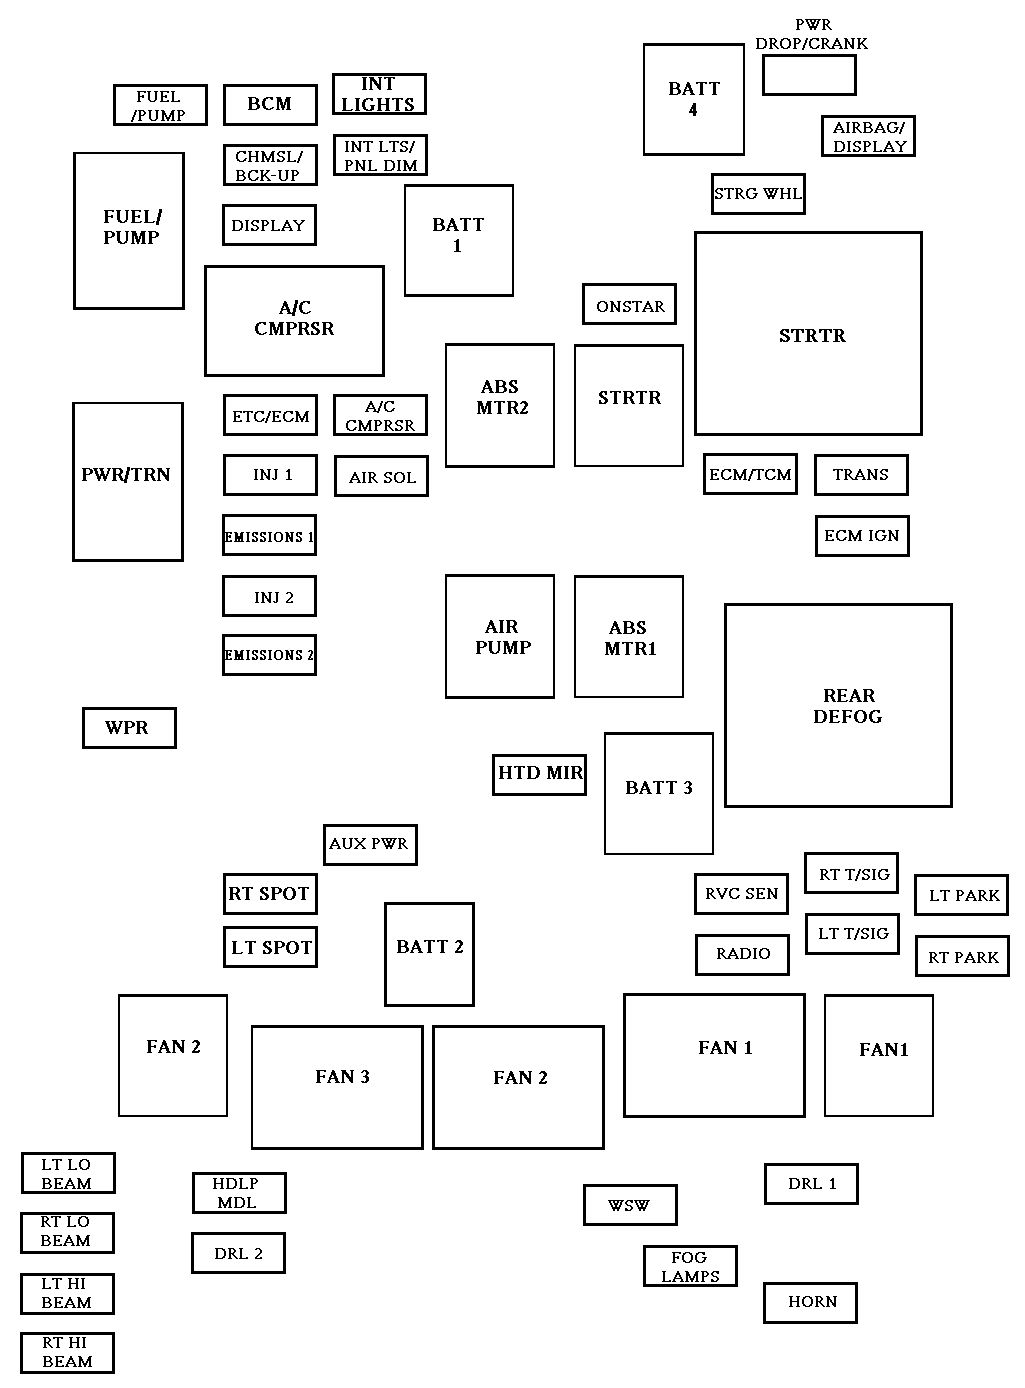 2008 Impala Fuse Box Location Simple Wiring Diagram 2007 Accord 2009 Chevy Mustang 06